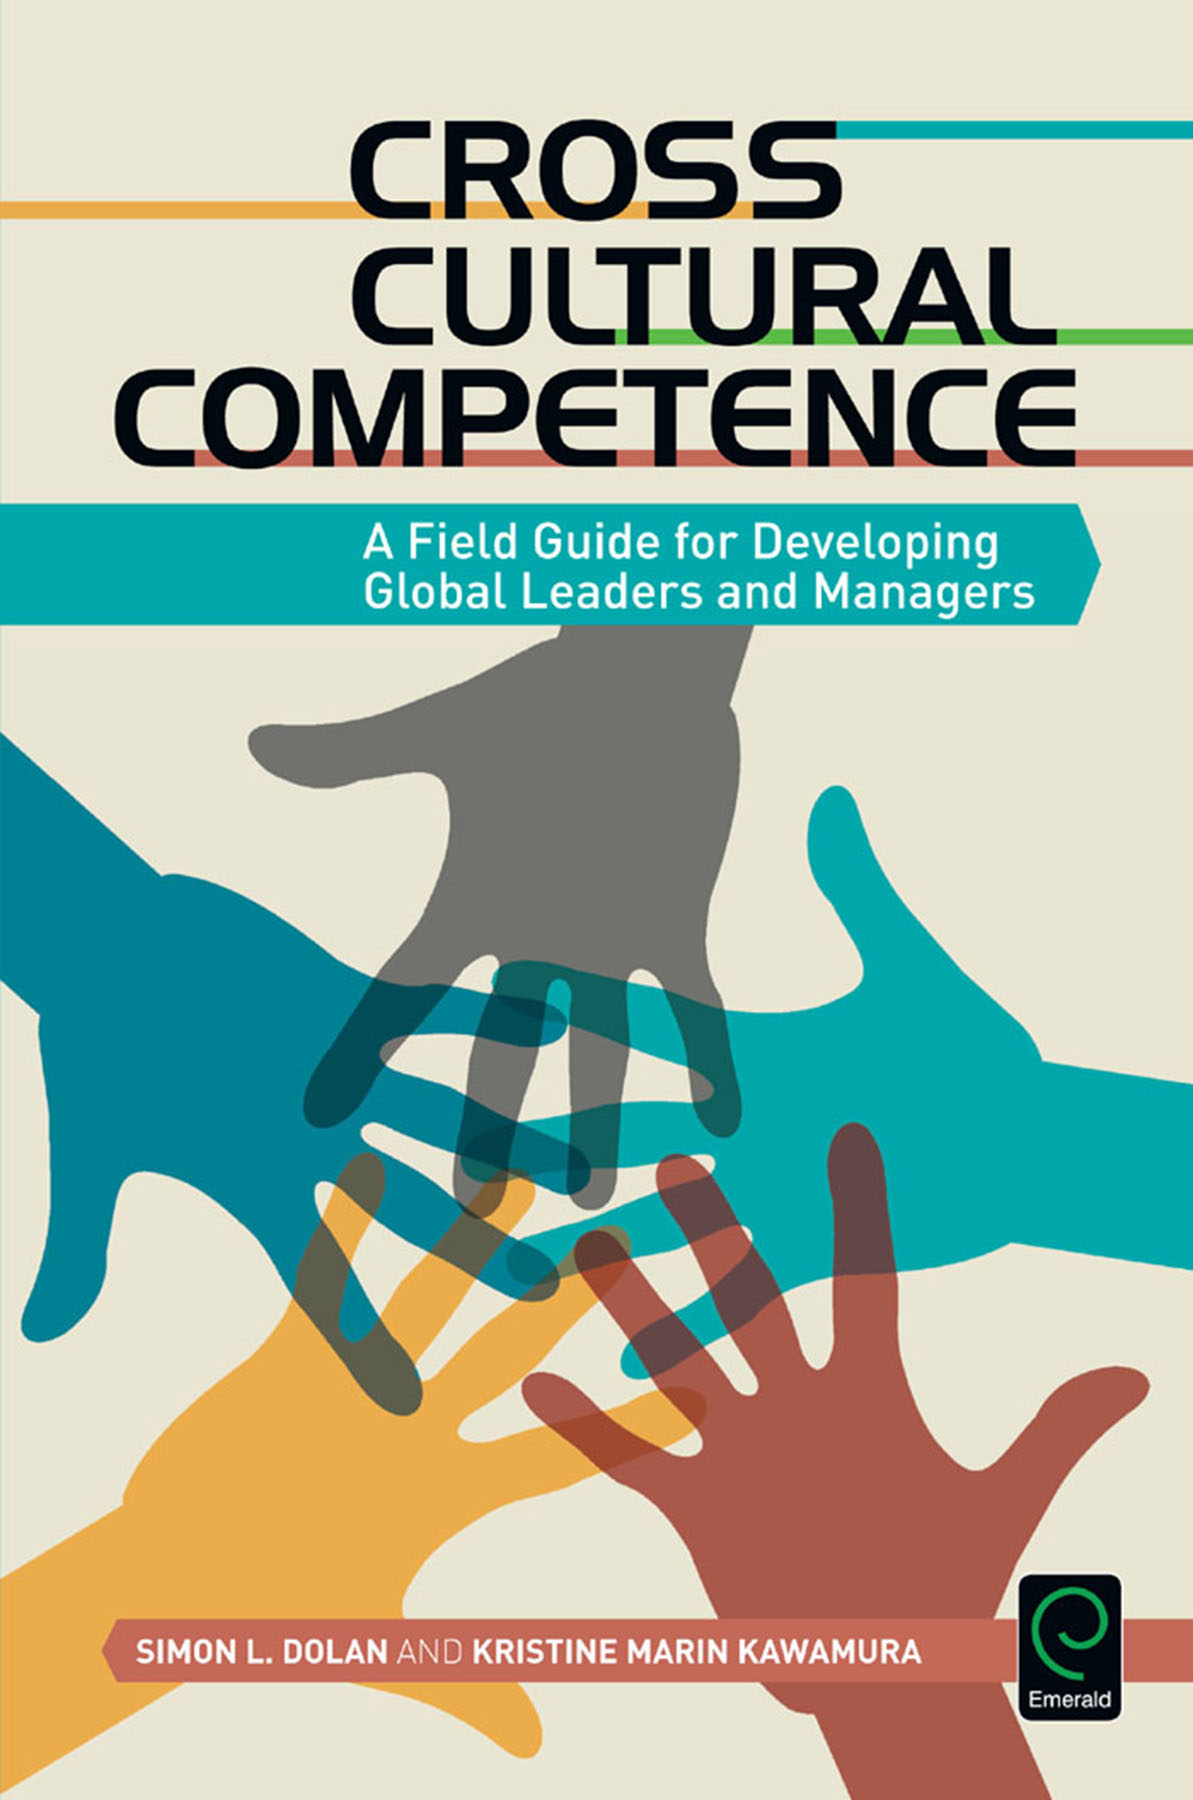 Book cover for Cross Cultural Competence:  A Field Guide for Developing Global Leaders and Managers a book by Simon L. Dolan, Kristine Marin Kawamura